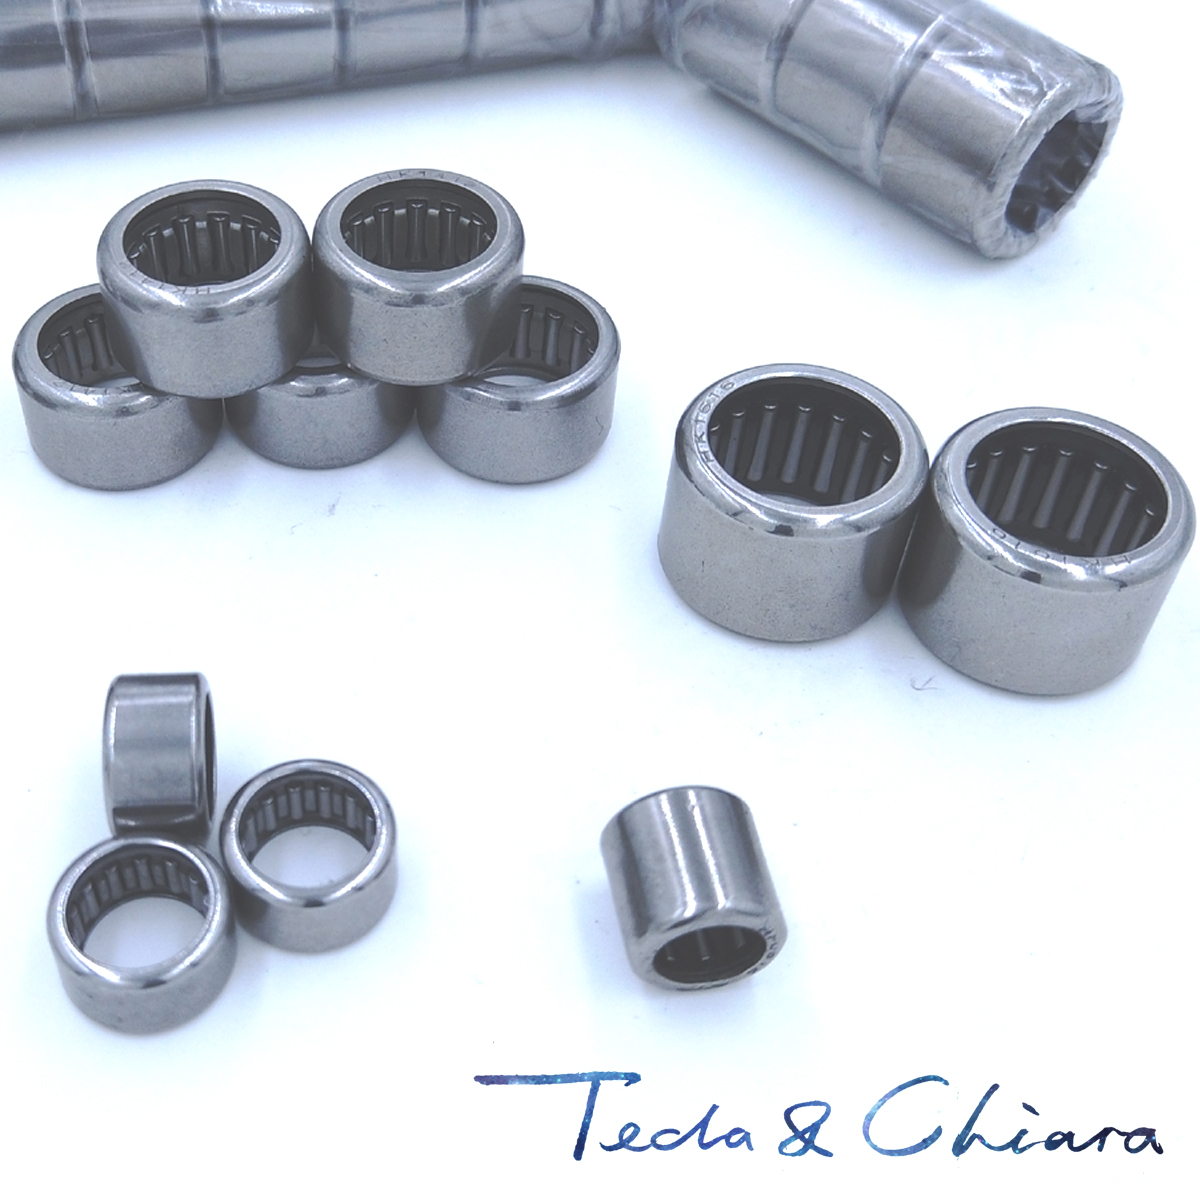 1Pc / 1Piece HK101410 <font><b>HK1010</b></font> 10 x 14 x 10 mm Drawn Cup Type Needle Roller Bearing High Quality * image